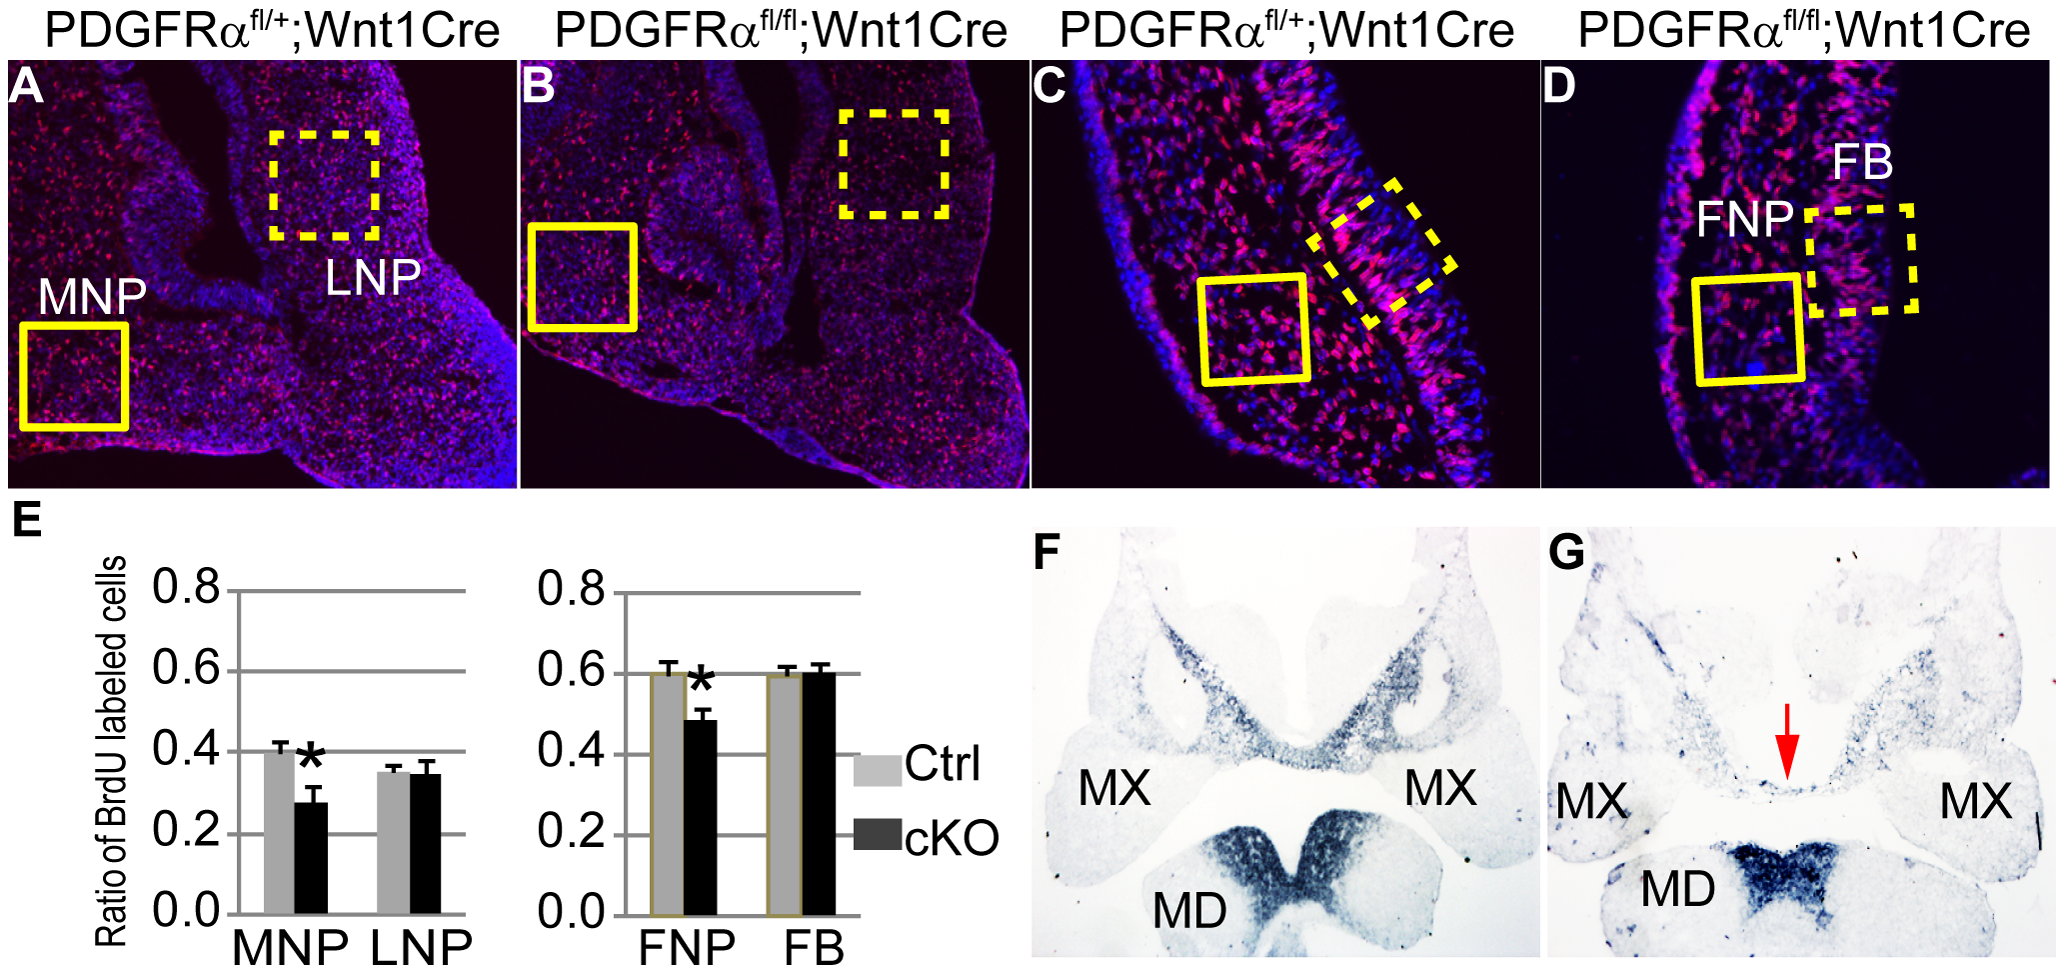 PDGFRα is essential to maintain cell proliferation and gene expression of MNP.